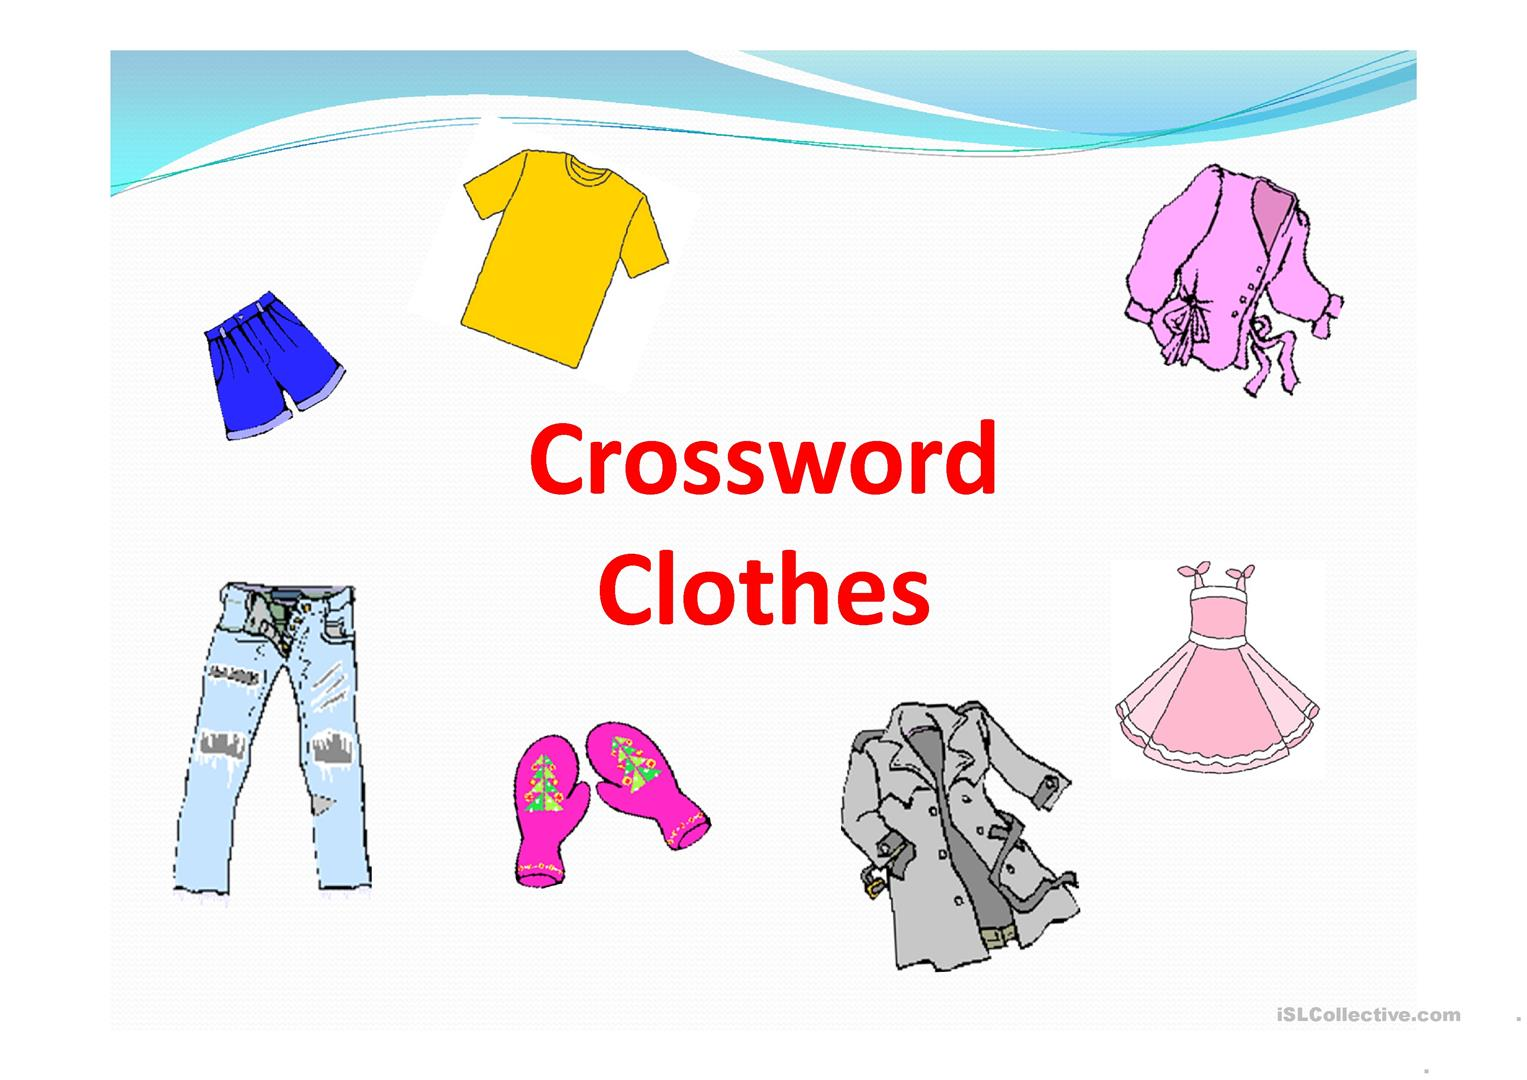 Crossword Clothes